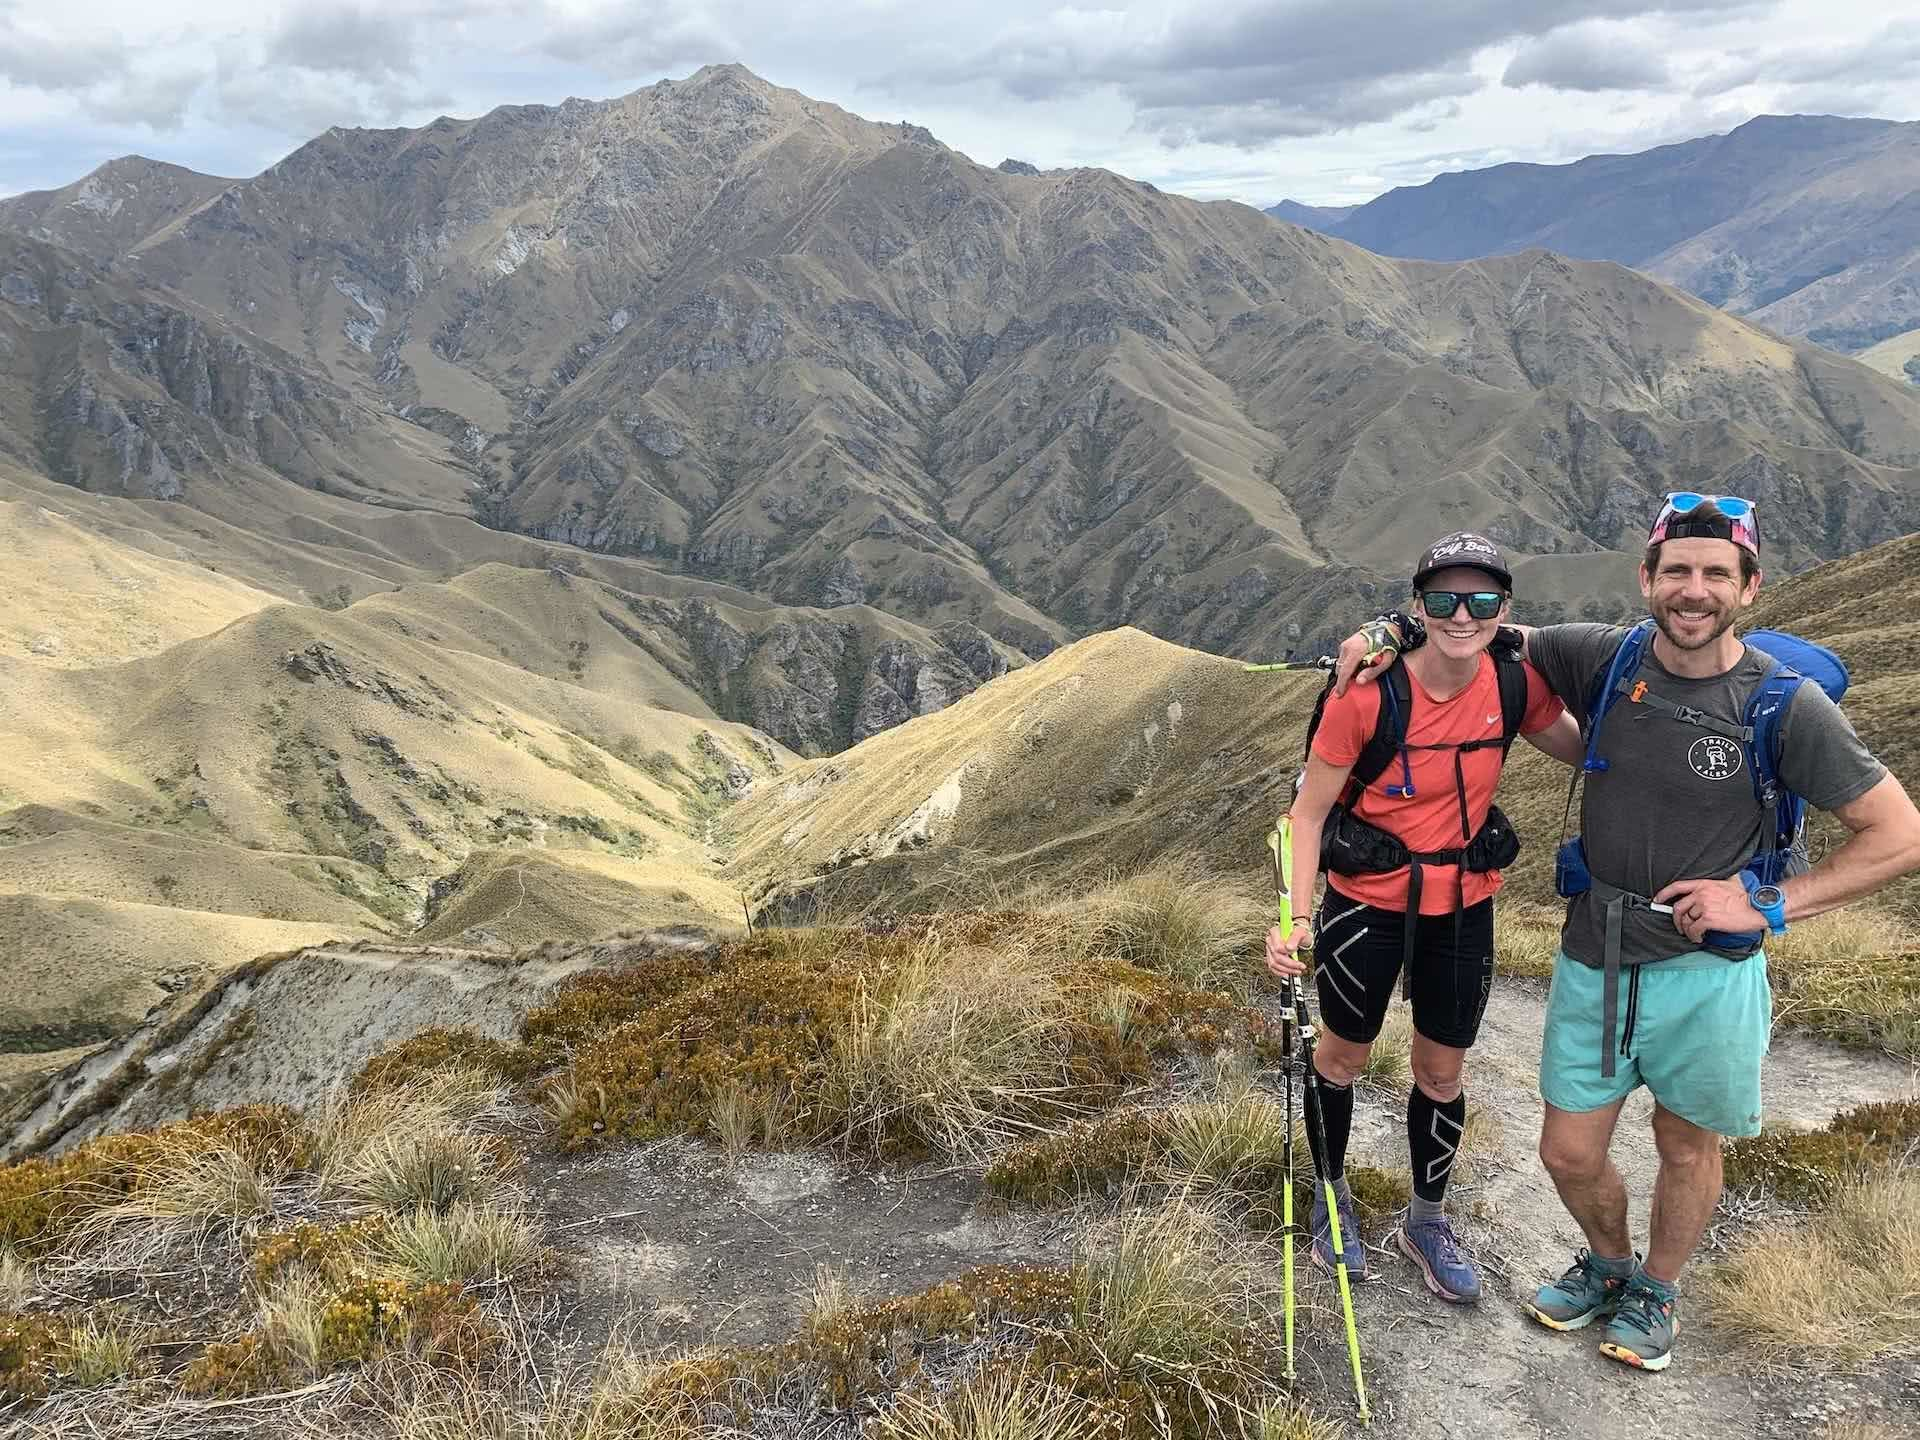 Lucy Clark Has Run New Zealand In 66 Days, lucy clark, te araroa, fastest known time, new zealand